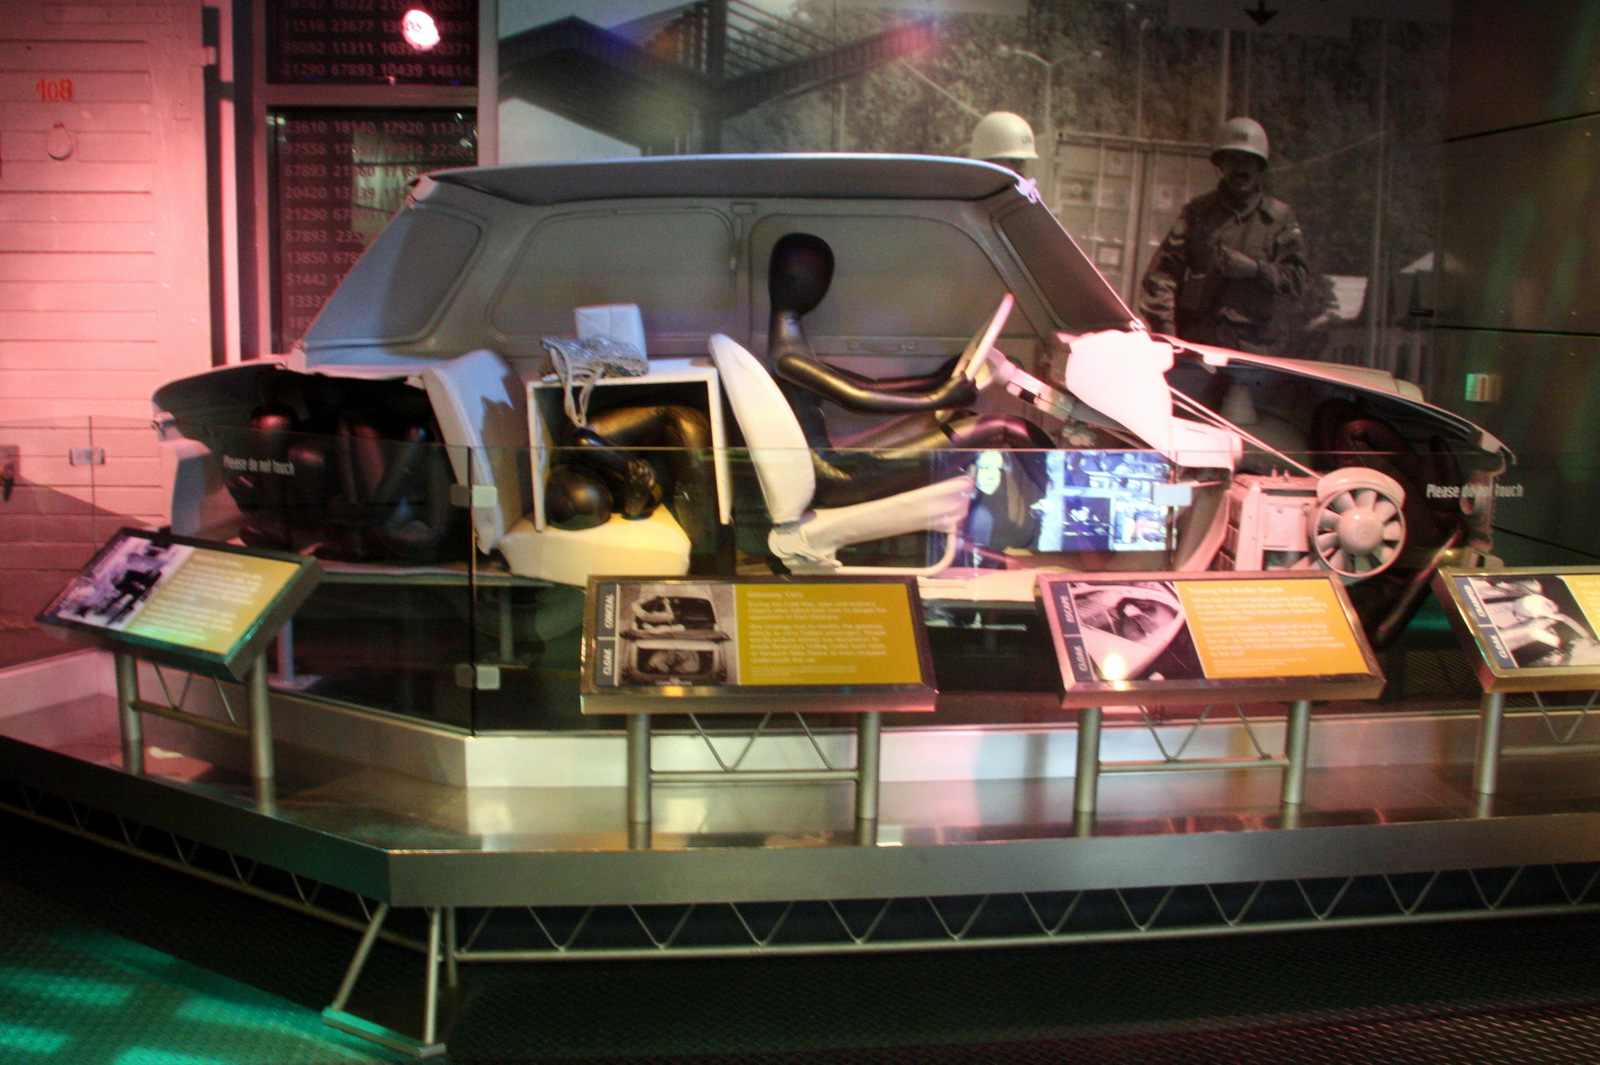 A cutaway Trabant inside the International Spy Museum shows how East Germans would have smuggled people out of the country.